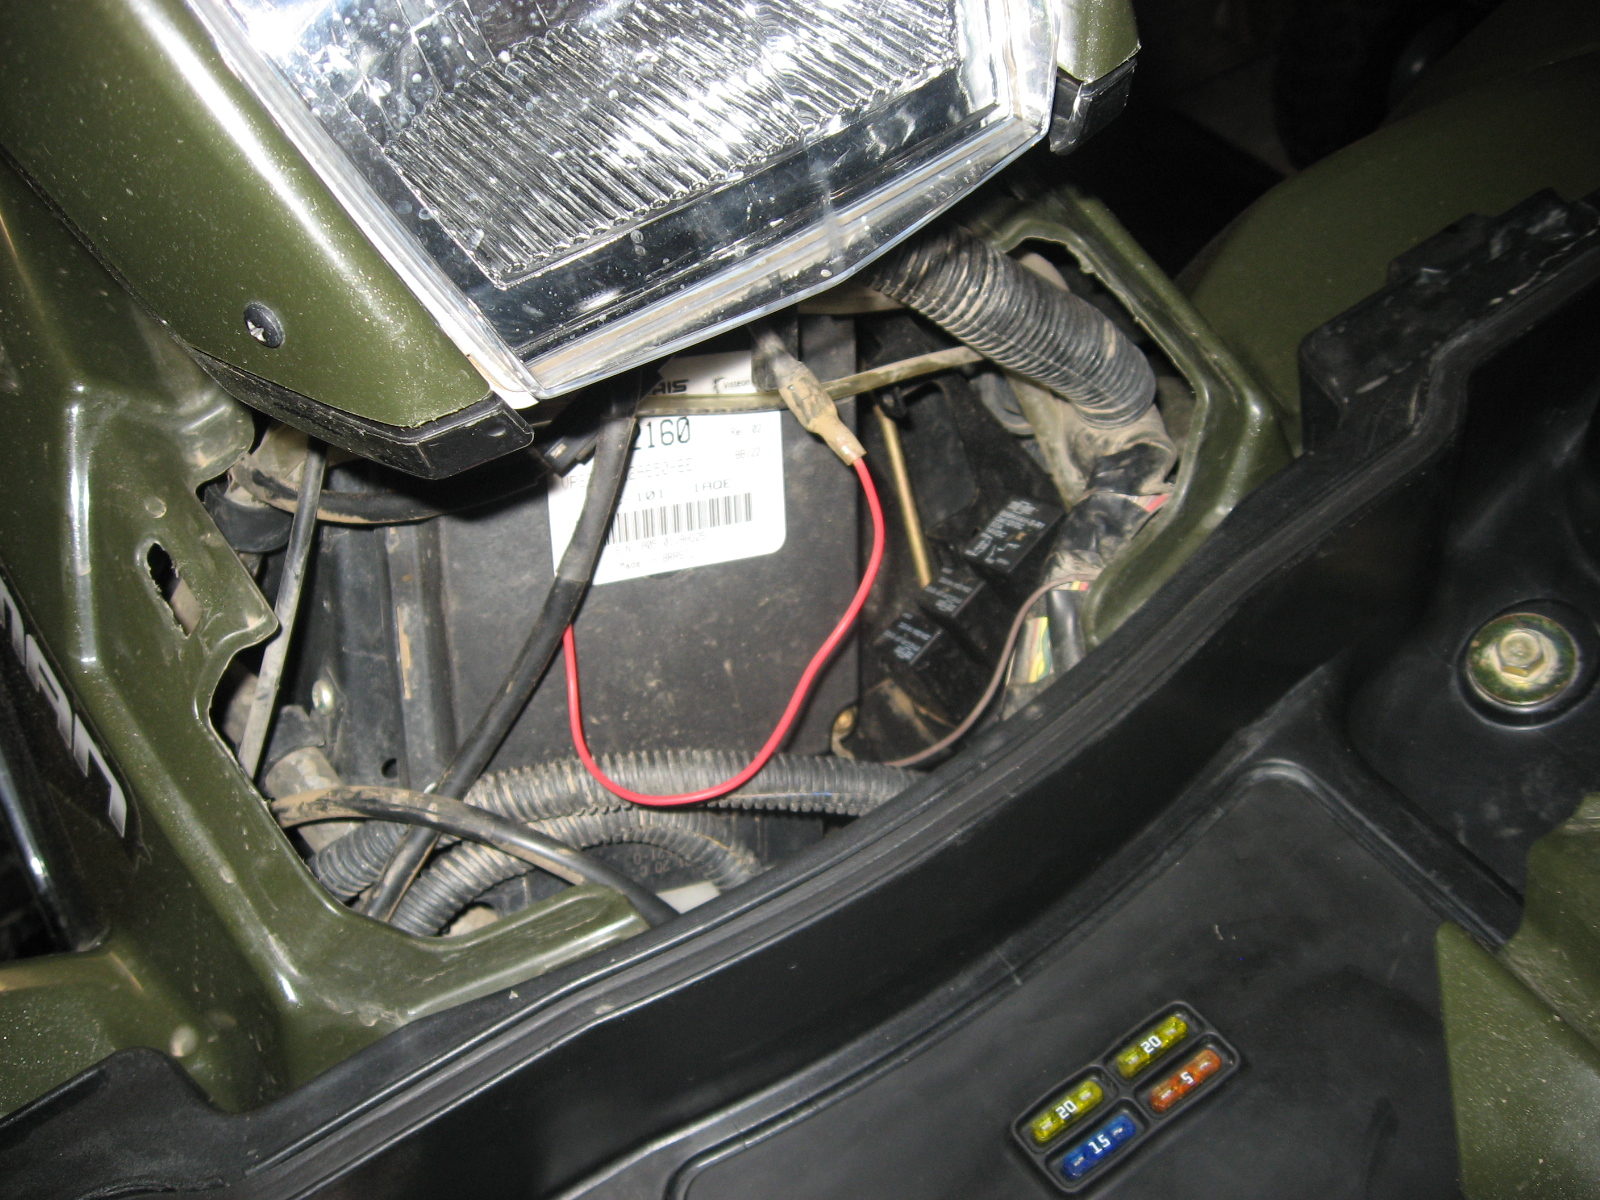 polaris sportsman 500 wiring diagram dta s40 ecu 2008 ho efi - page 7 atv forum